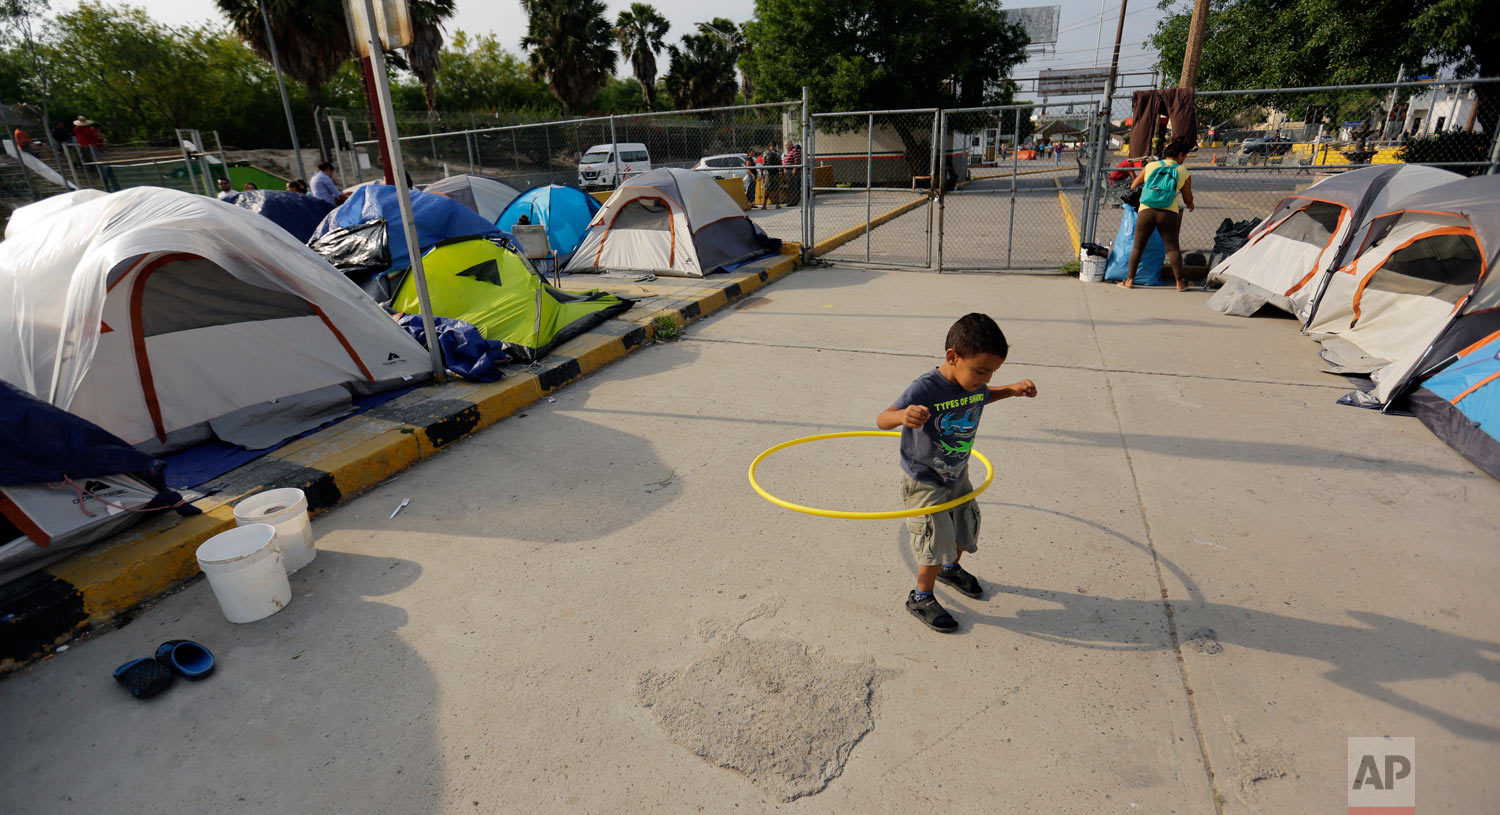 William Linares, 5, who is traveling with his mother Suanny Gomez from Honduras and seeking asylum in the United States plays in an encampment where he is living near the international bridge in Matamoros, Mexico, April 30, 2019. (AP Photo/Eric Gay)